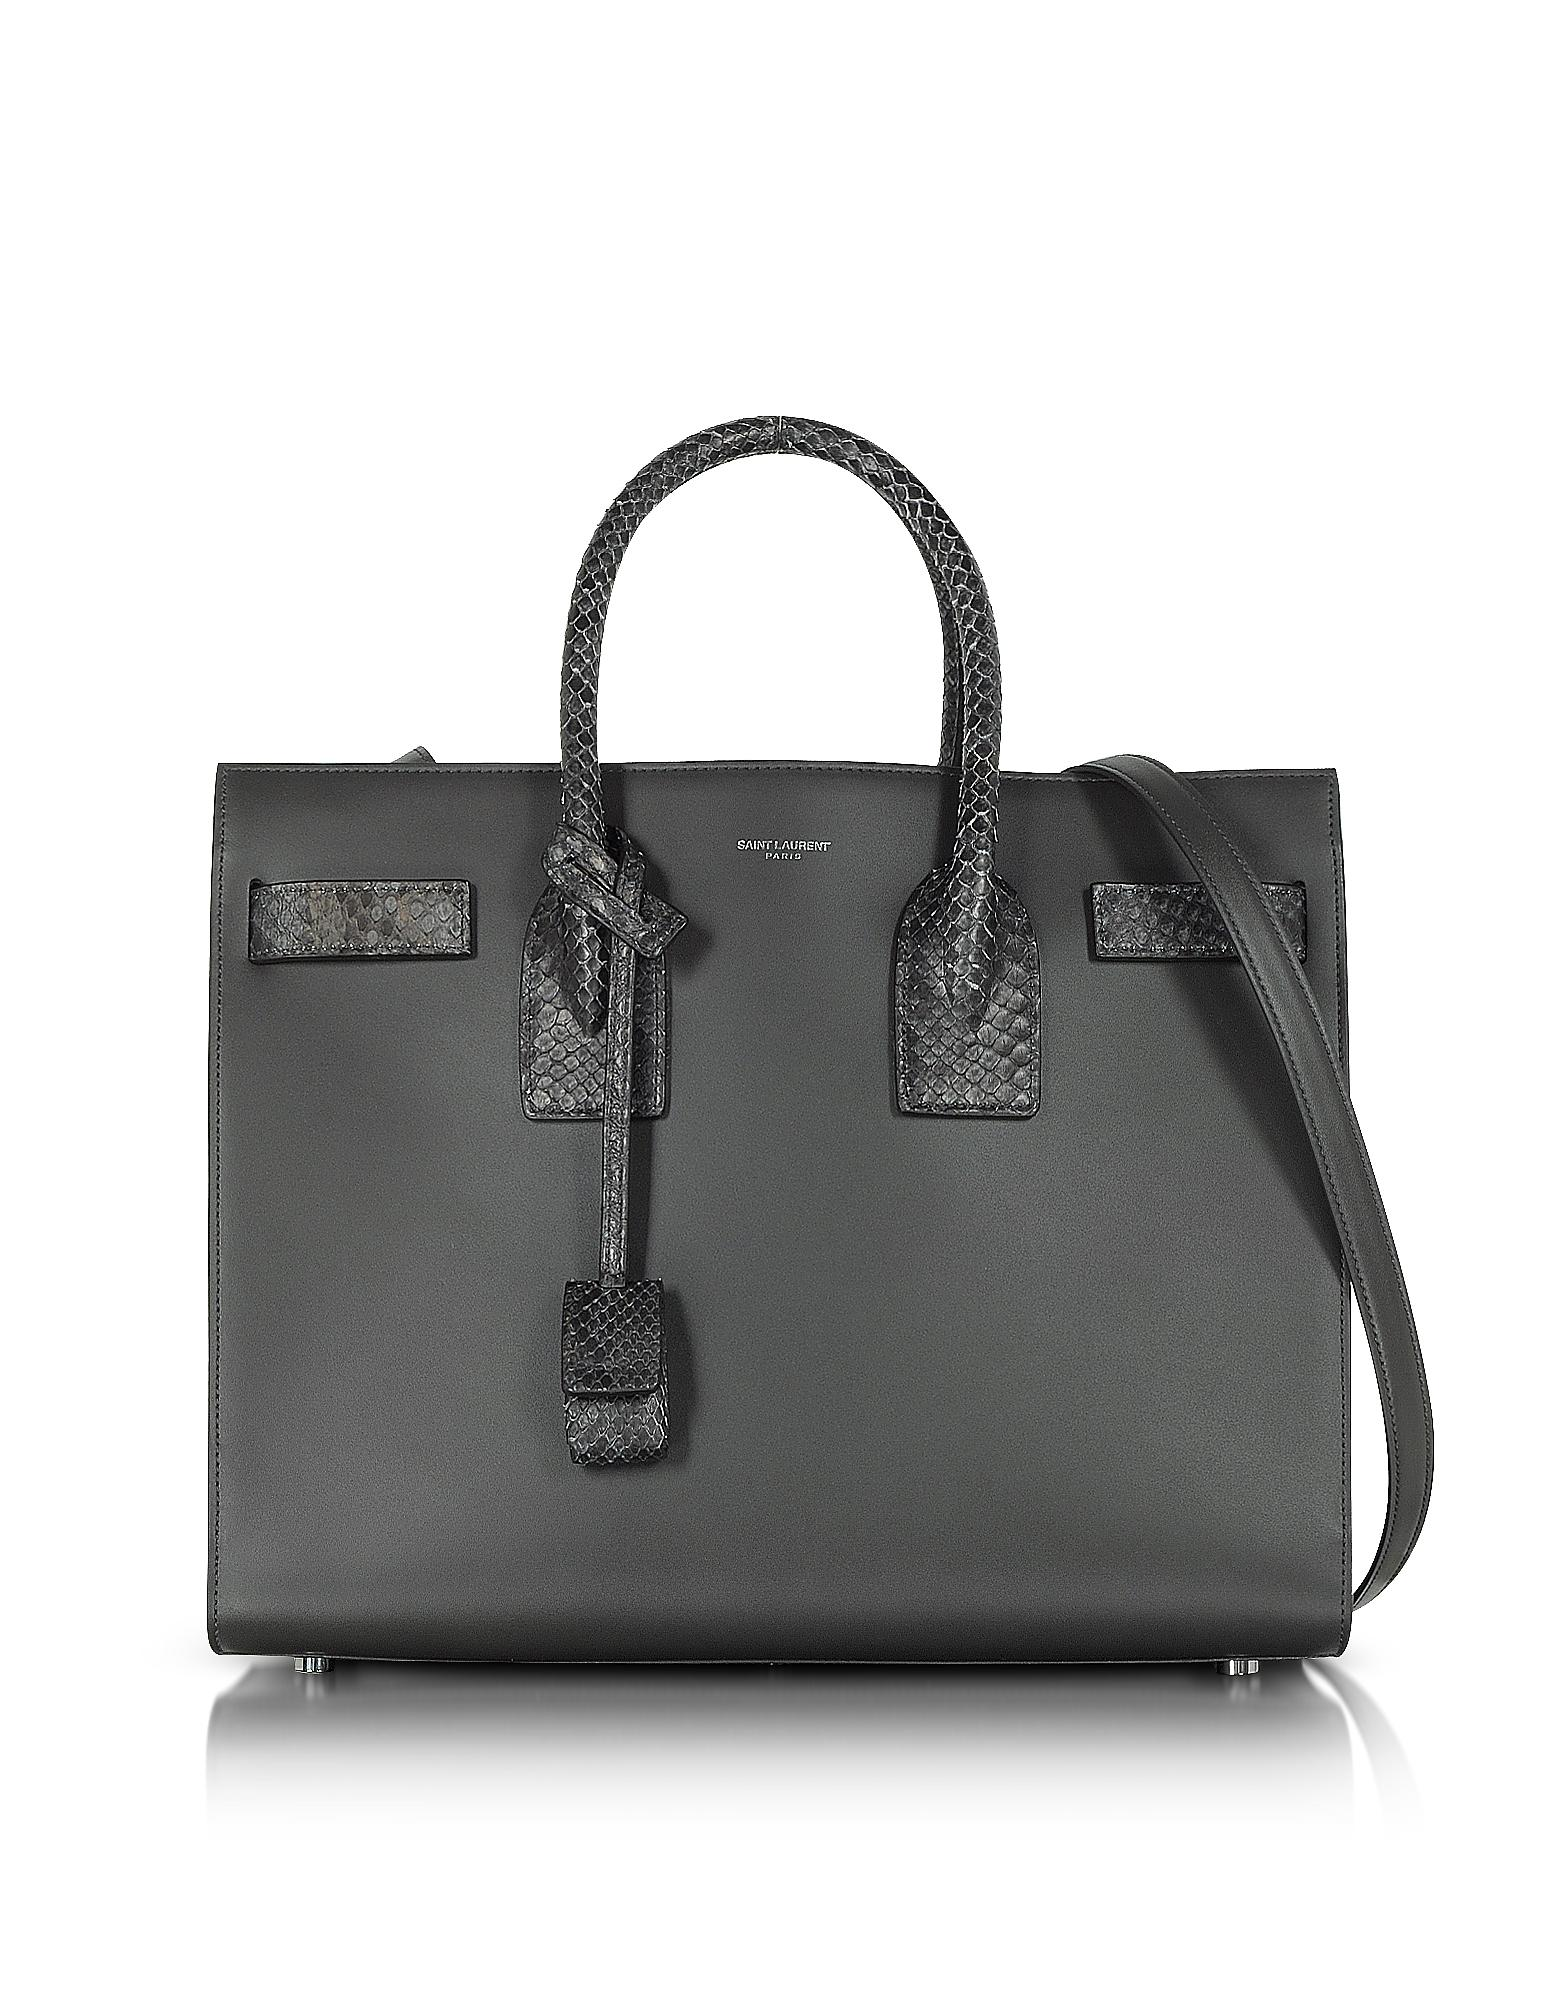 3d35eeb370e1 Saint Laurent Dark Anthracite Leather And Python Skin Classic Small ...